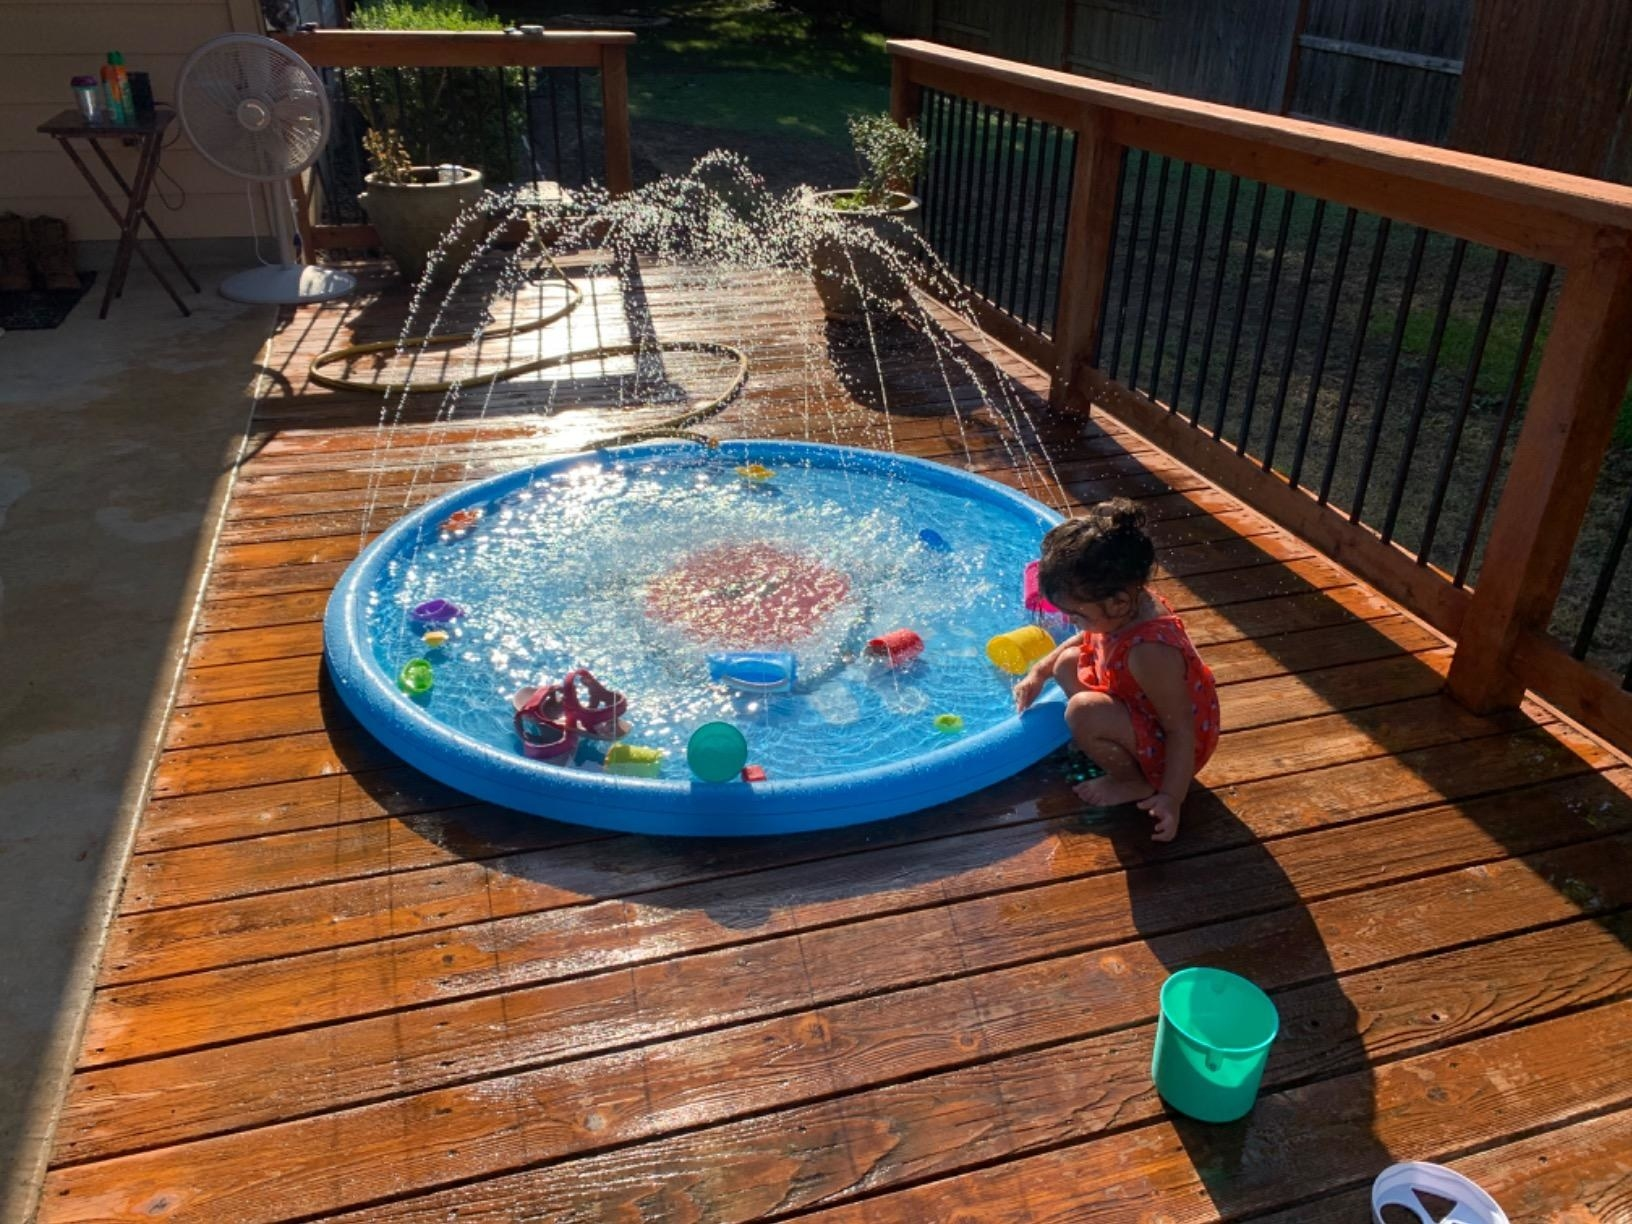 The splash pad, which is circular, and has streams of water that shoot out from various points around the rim of the pad